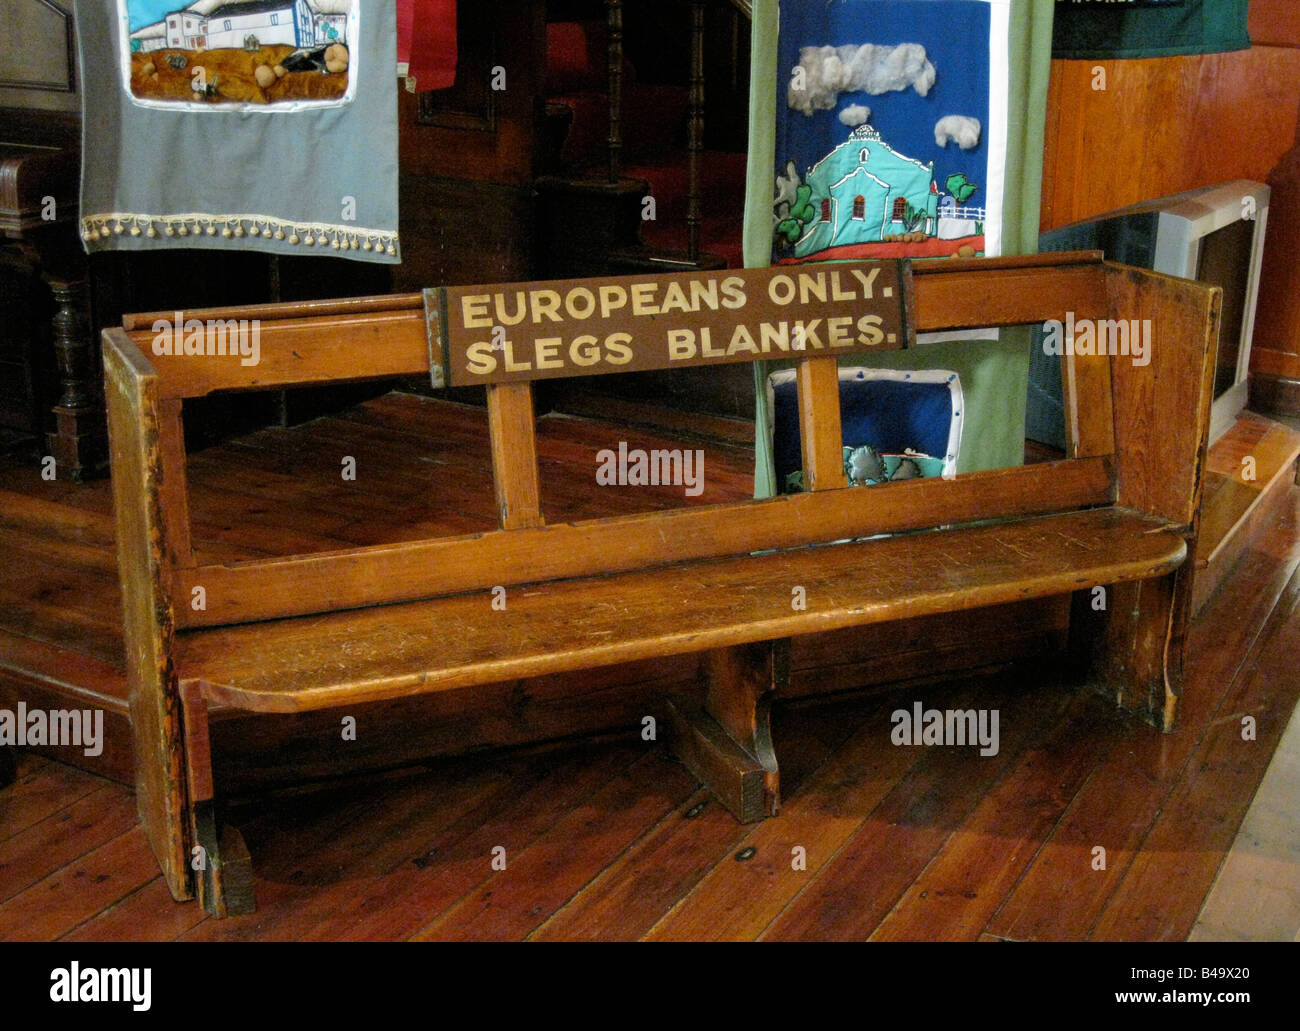 'Whites Only' Apartheid Era Bench, District Six Museum, Cape Town, South Africa - Stock Image